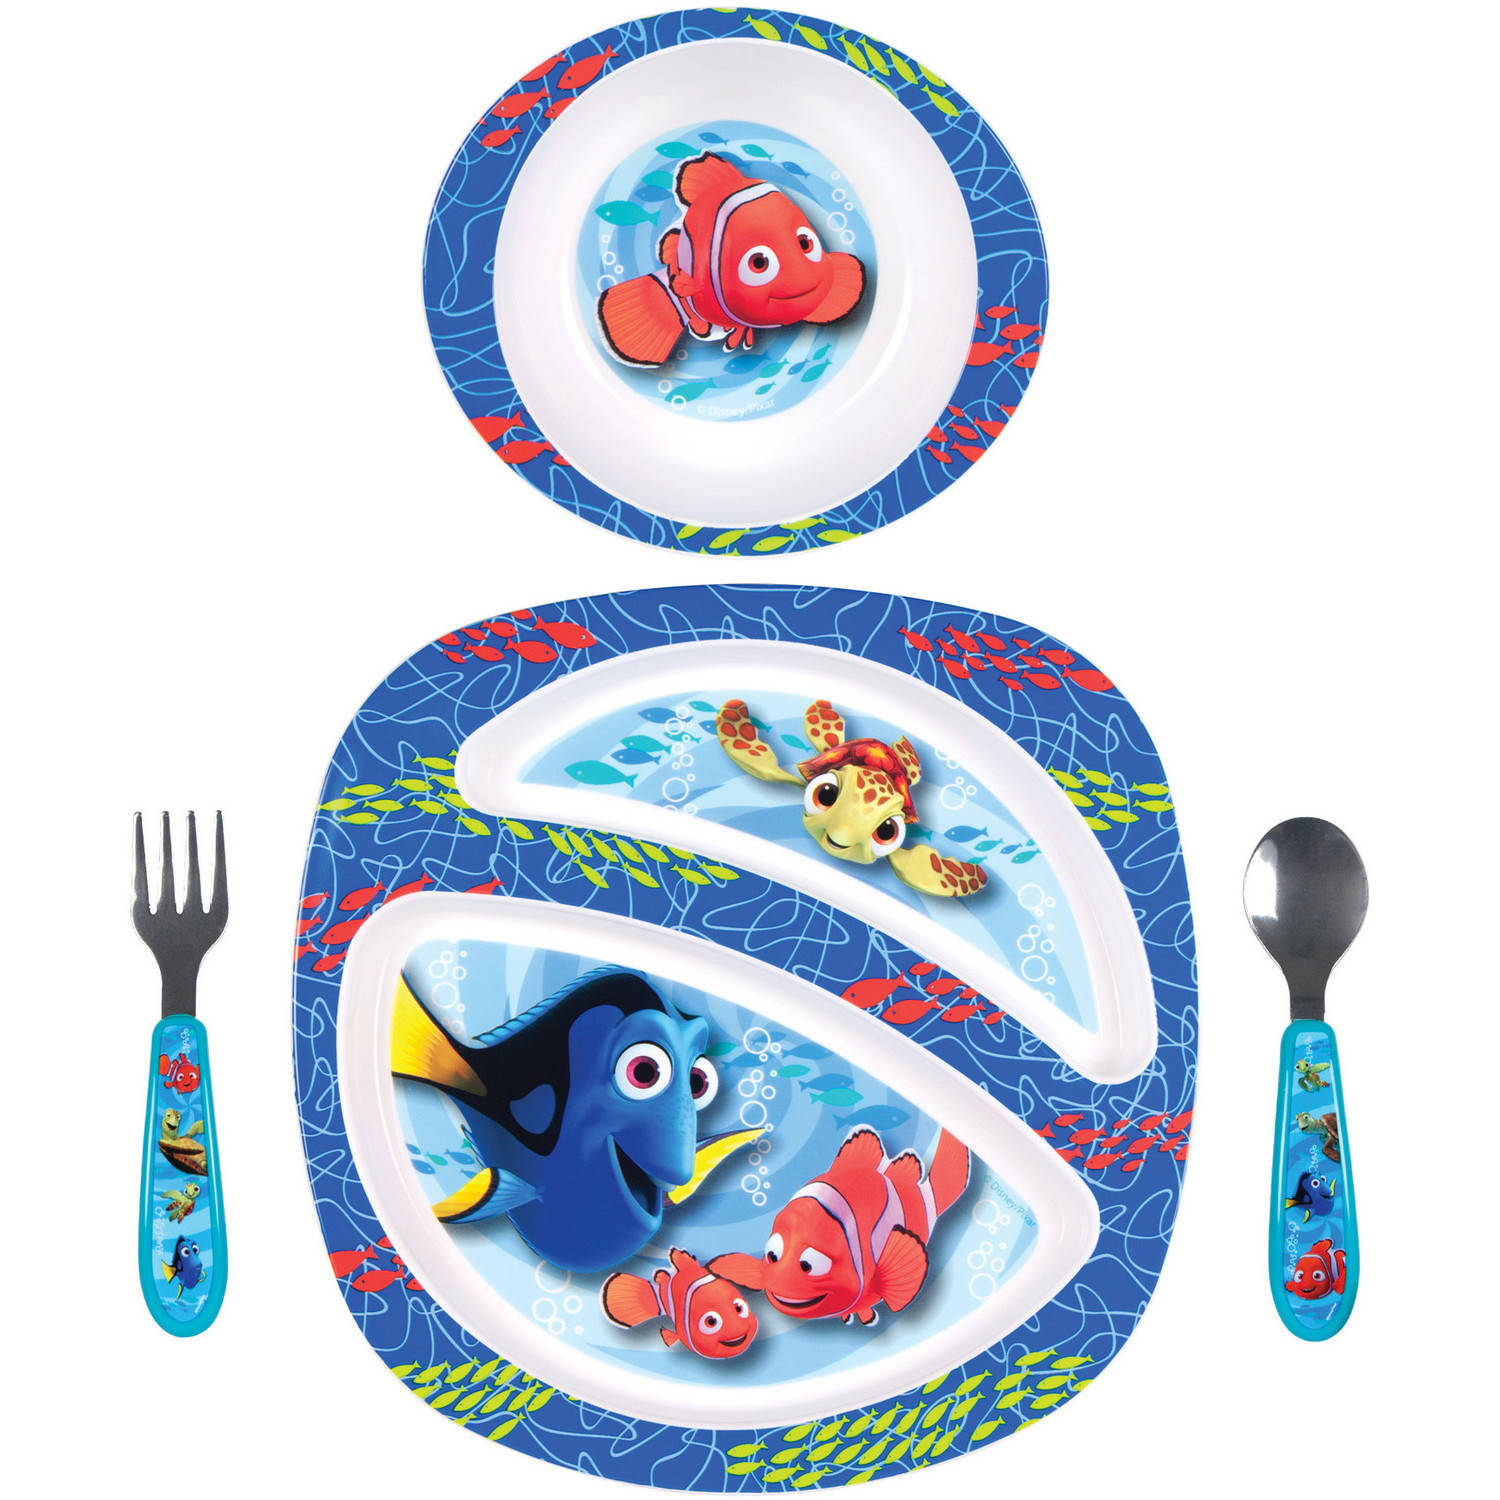 The First Years Disney/Pixar Finding Nemo 4-Piece Feeding Set, BPA-Free